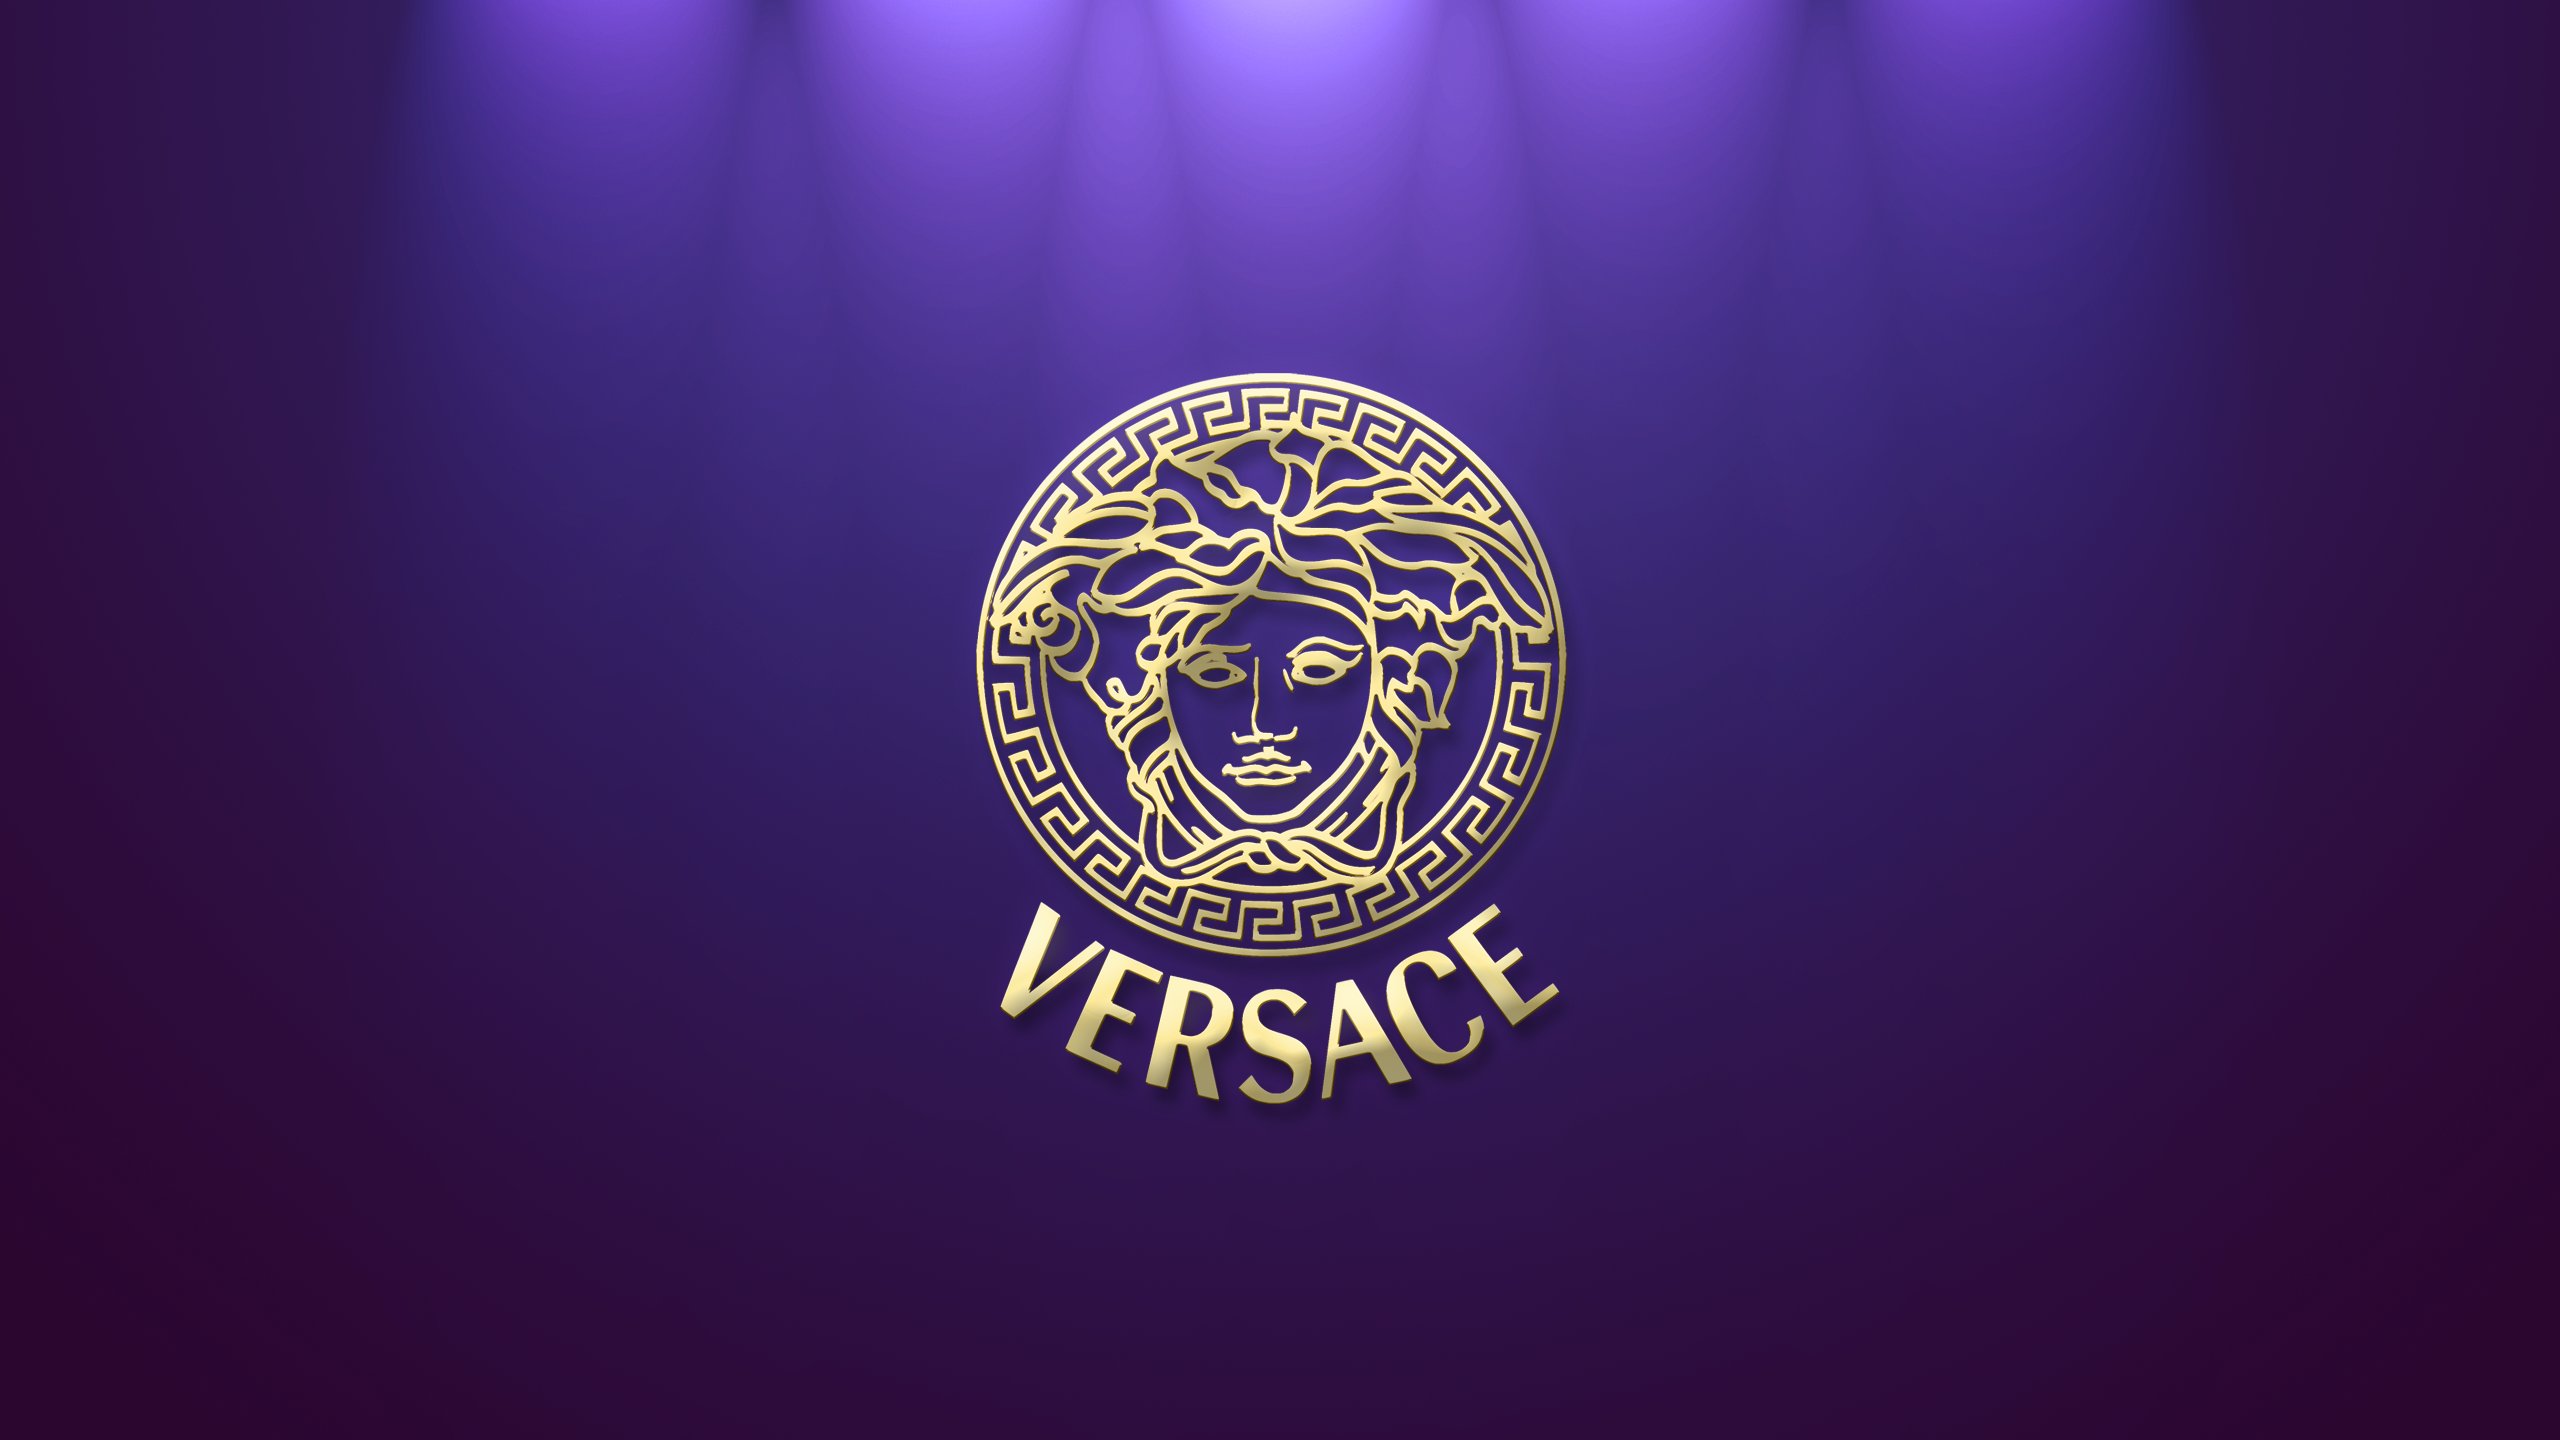 Versace Hd Logo Auto Design Tech 2560x1440